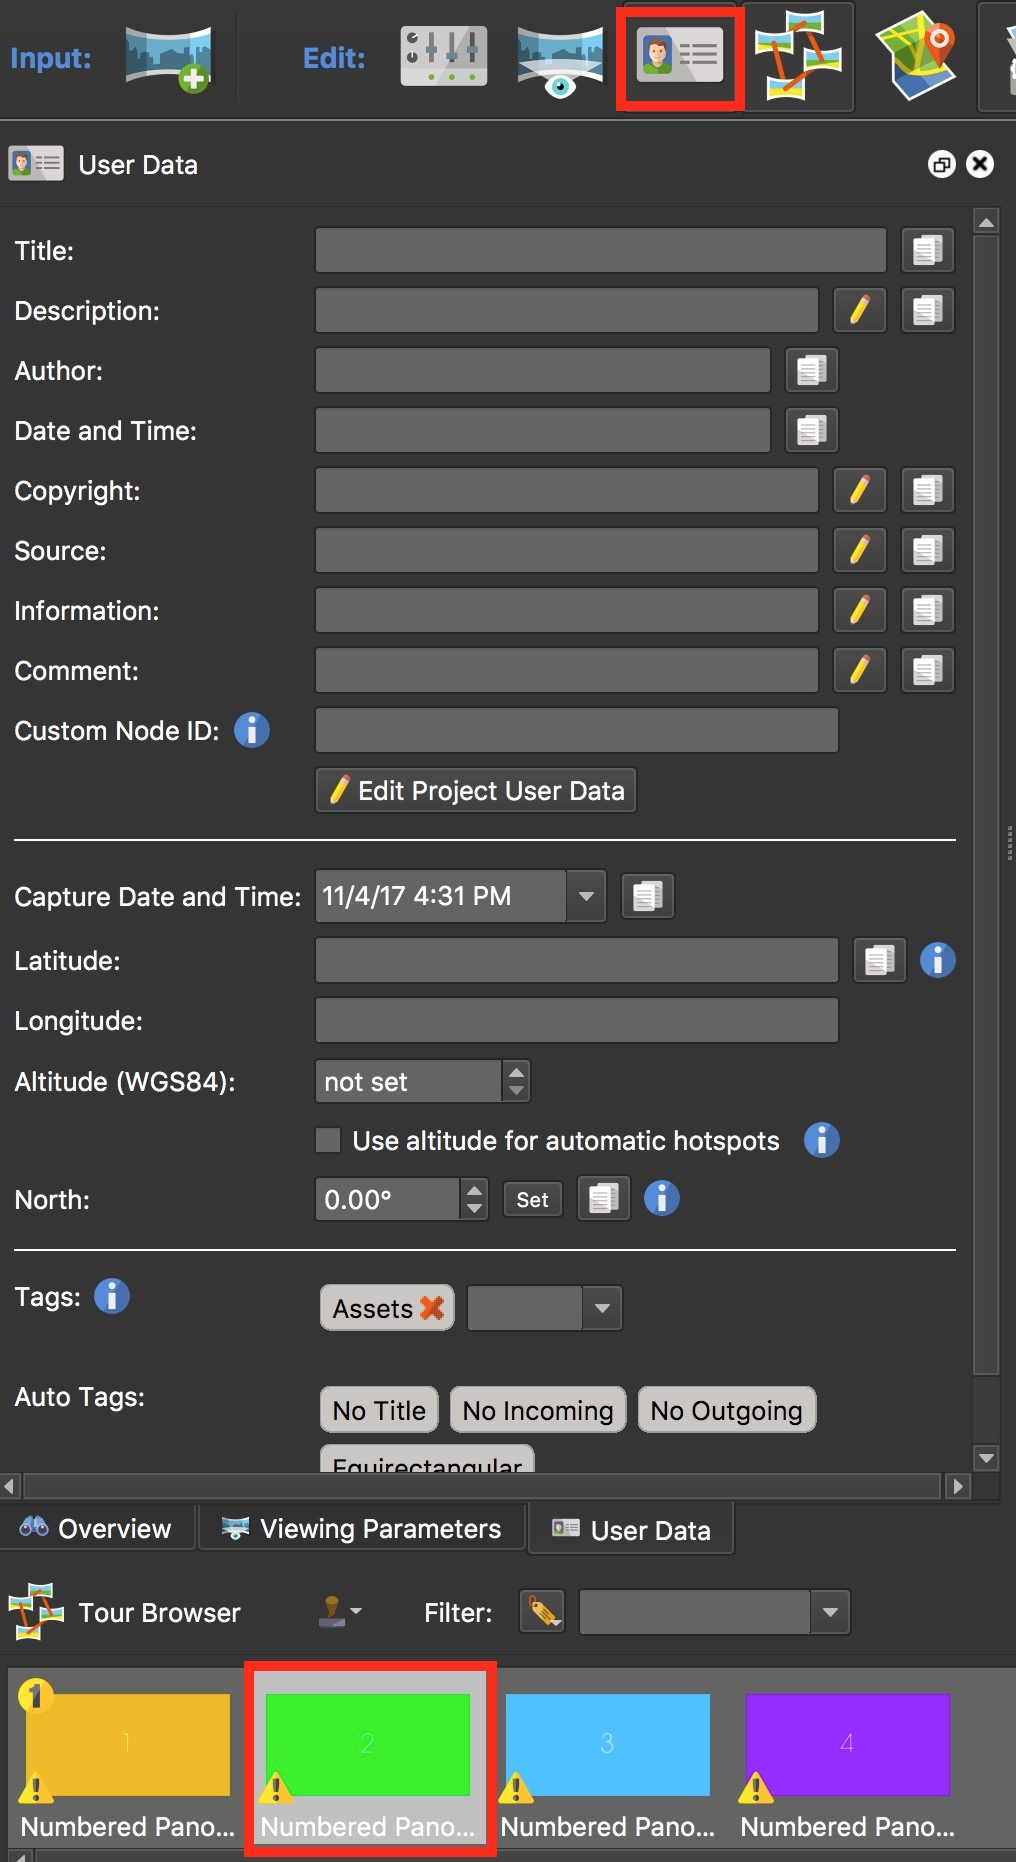 Figure #2: First panorama selected and User Data panel open